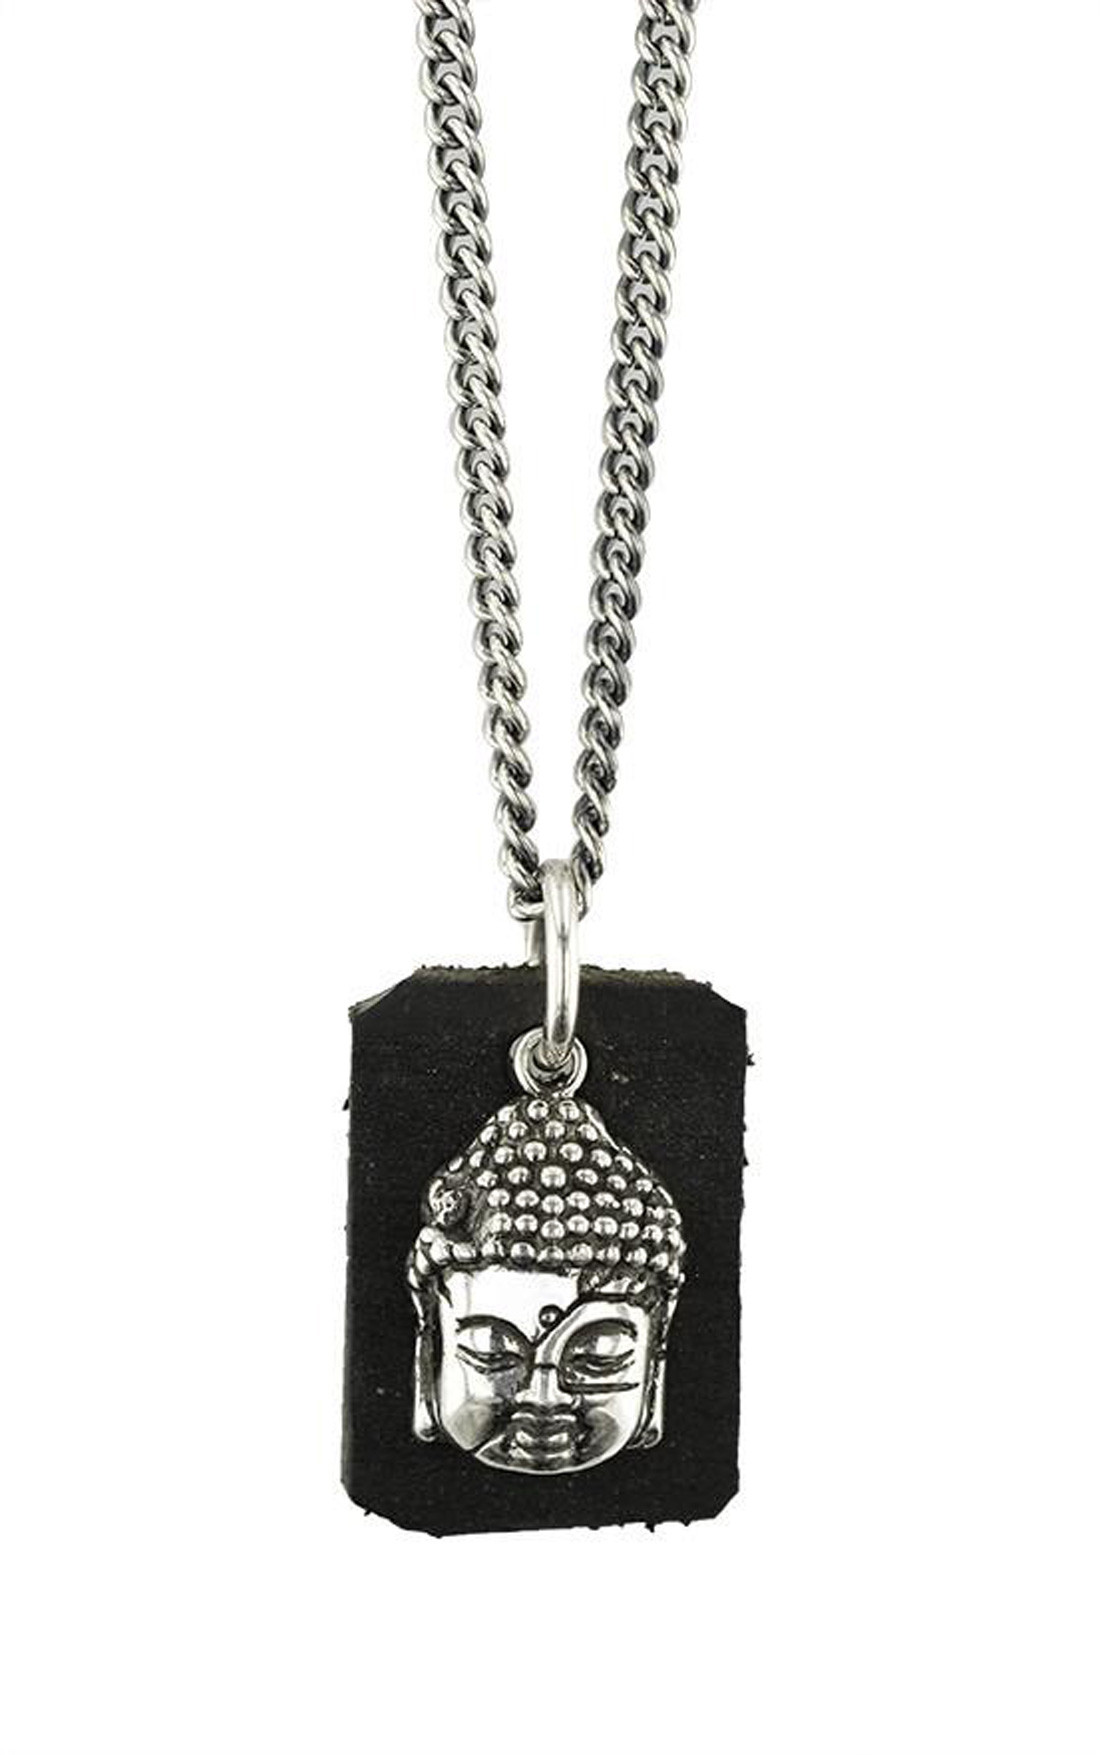 King Baby - Meditating Buddha Pendant with Leather Tag (K10-9068)